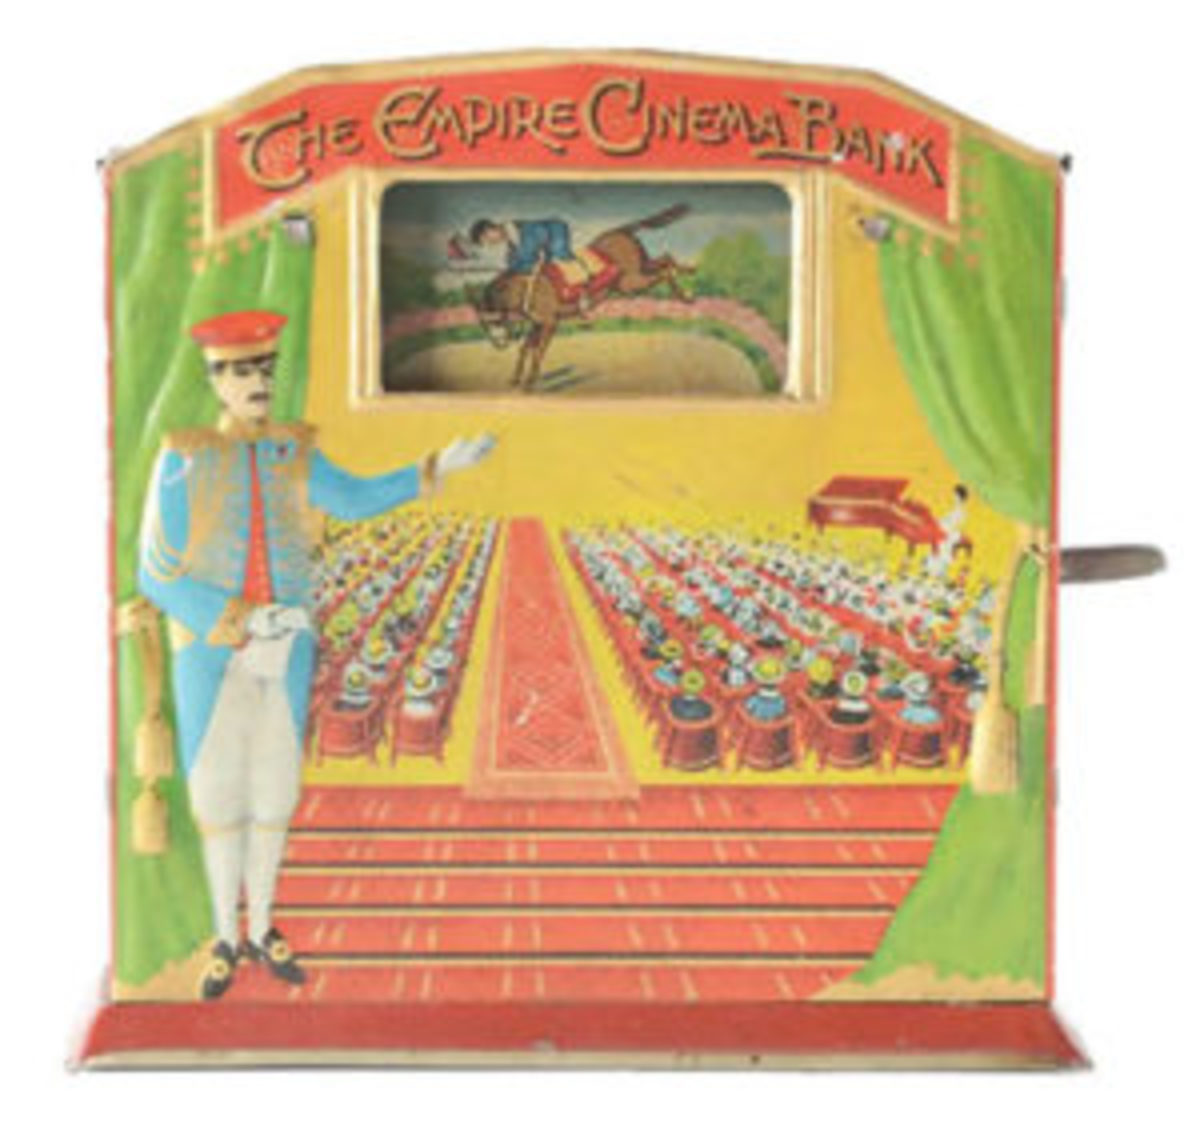 A seldom-seen German-made production known as The Empire Cinema, depicting a movie theater, sold $15,990.